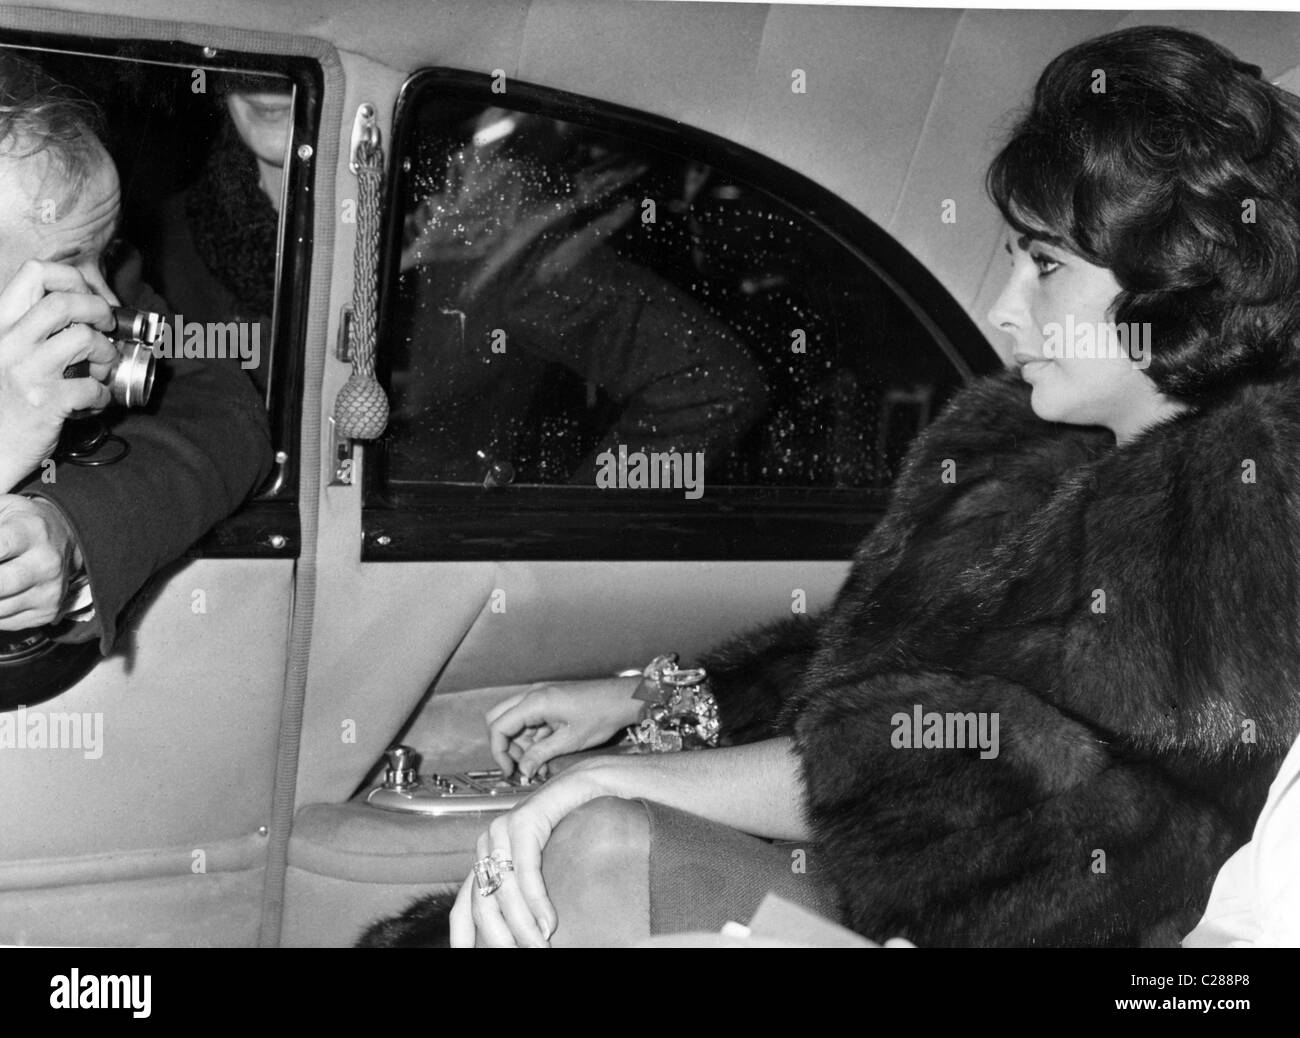 Actress Elizabeth Taylor photographed in car - Stock Image